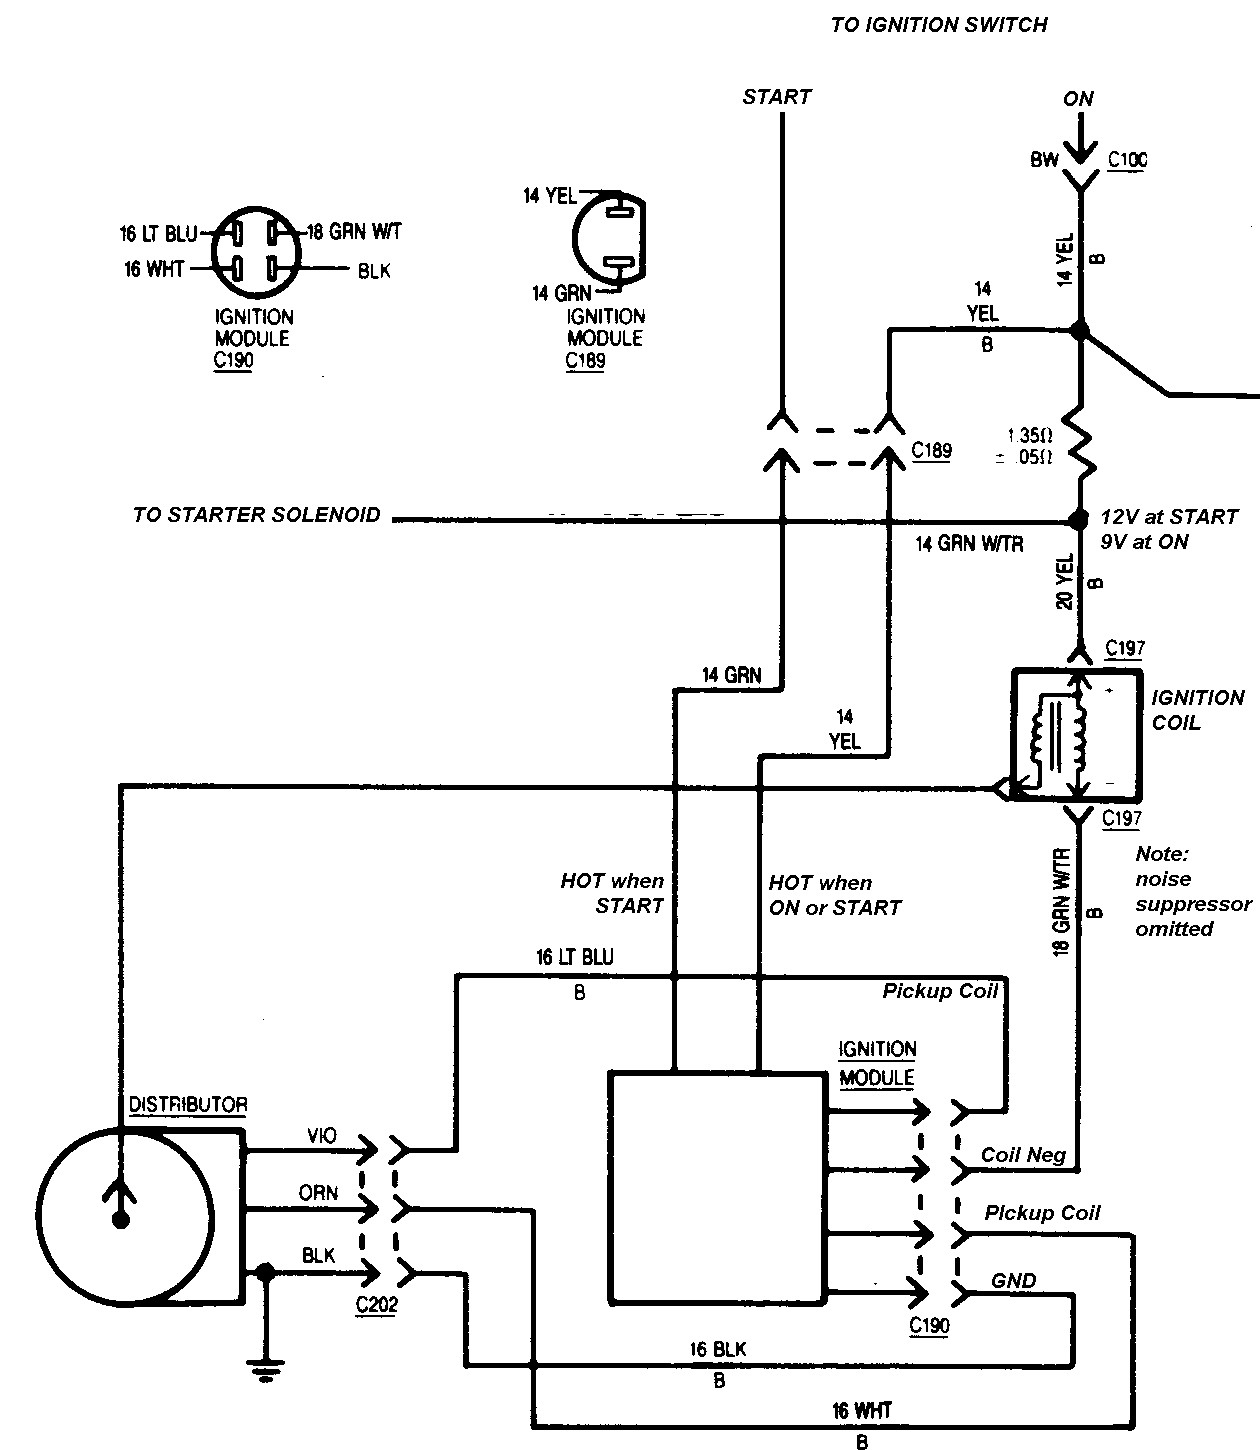 Gm Ignition Module Wiring Diagram - Wiring Diagram Explained - Ford Ignition Control Module Wiring Diagram